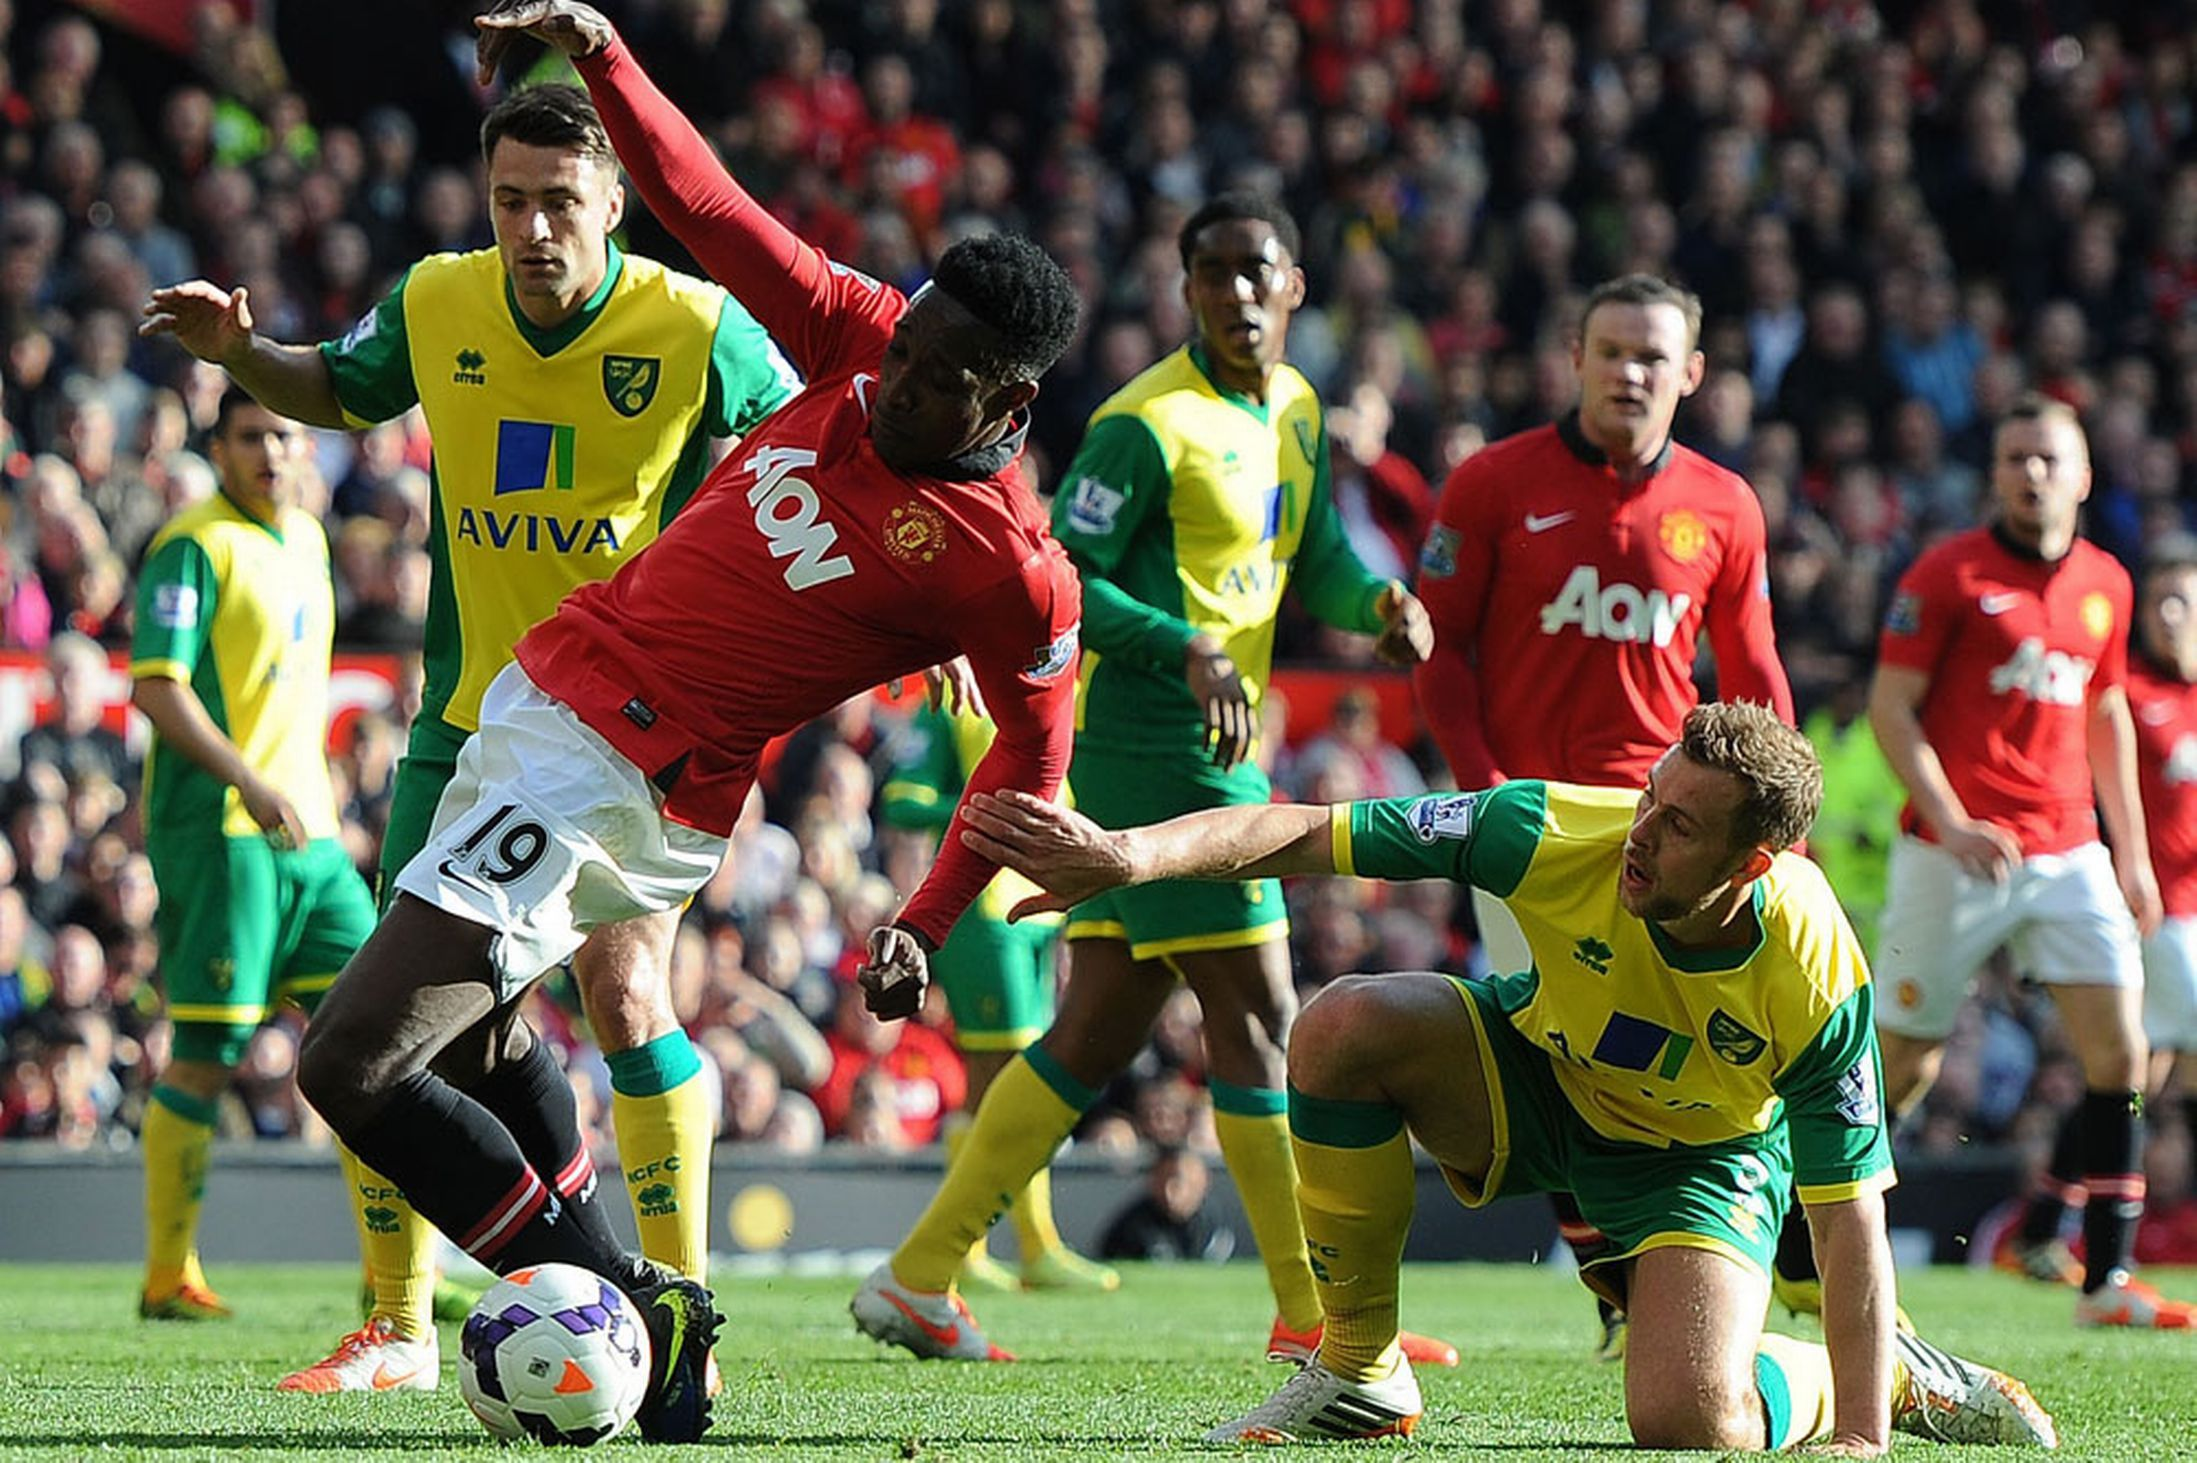 Man United 4 0 Norwich Red Devils Record Easy Win As Ryan Giggs Makes Managerial Bow Manchester United The Unit Ryan Giggs